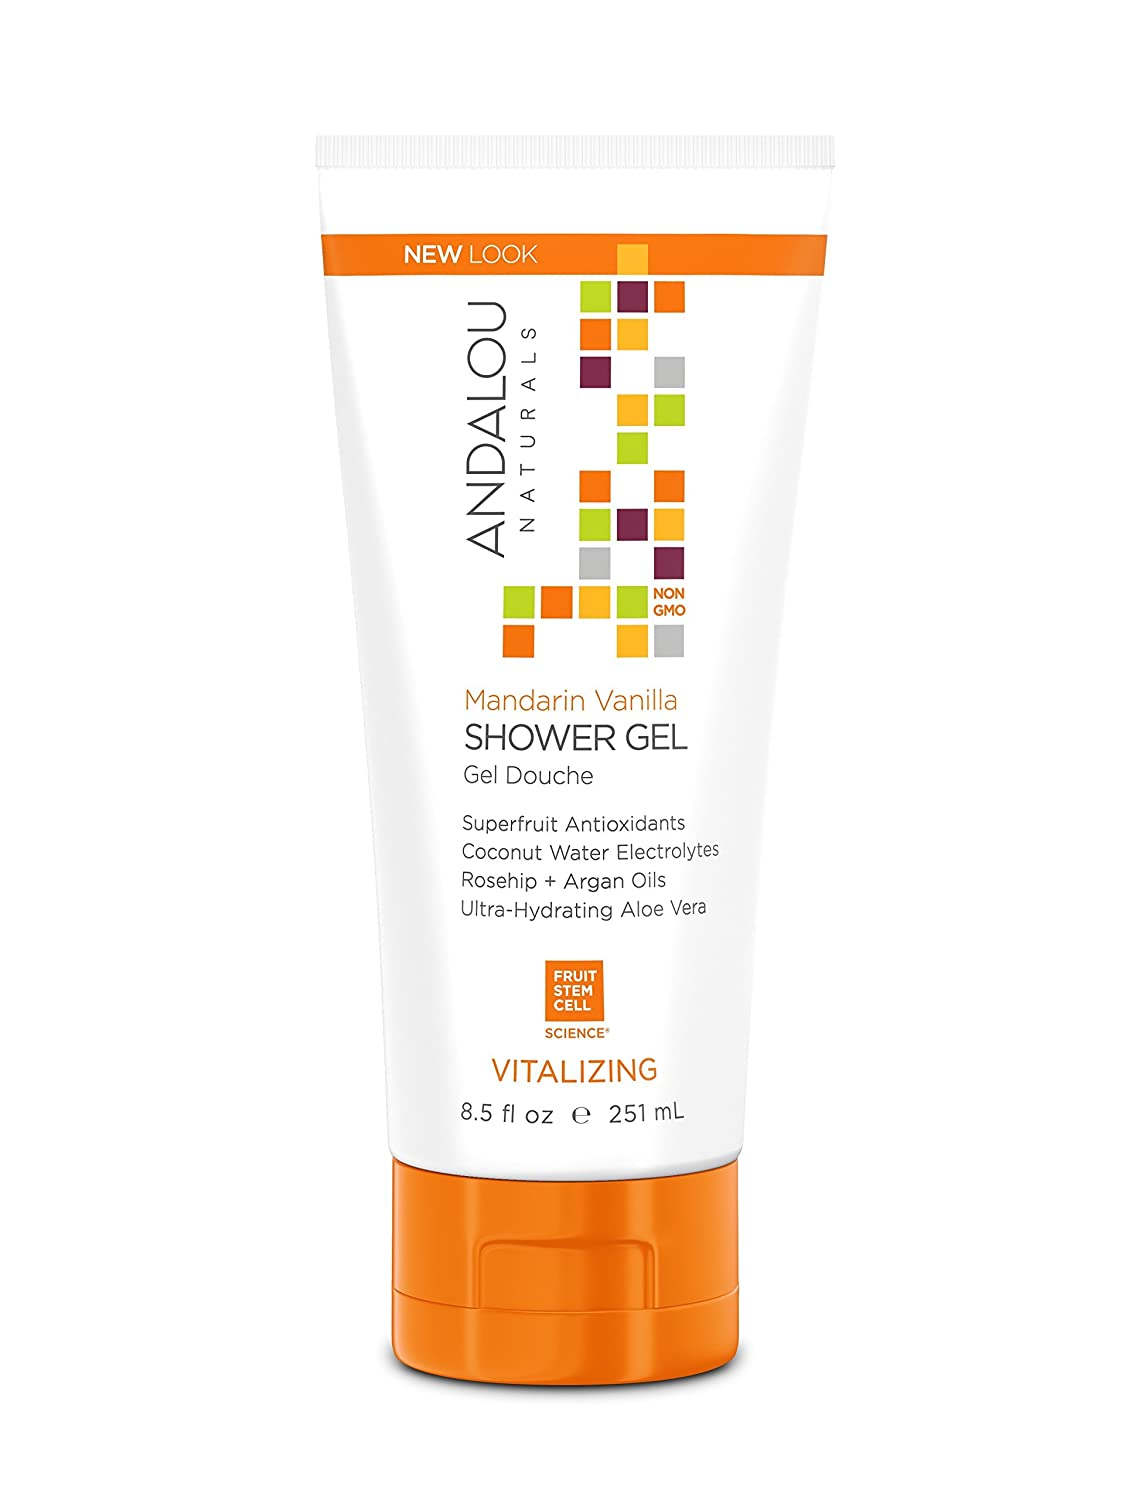 Andalou Naturals Mandarin Vanilla Vitalizing Shower Gel, 8.5 fl. oz., Gently Cleanses and Protects Skin's Moisture with Argan Oil and Coconut Water